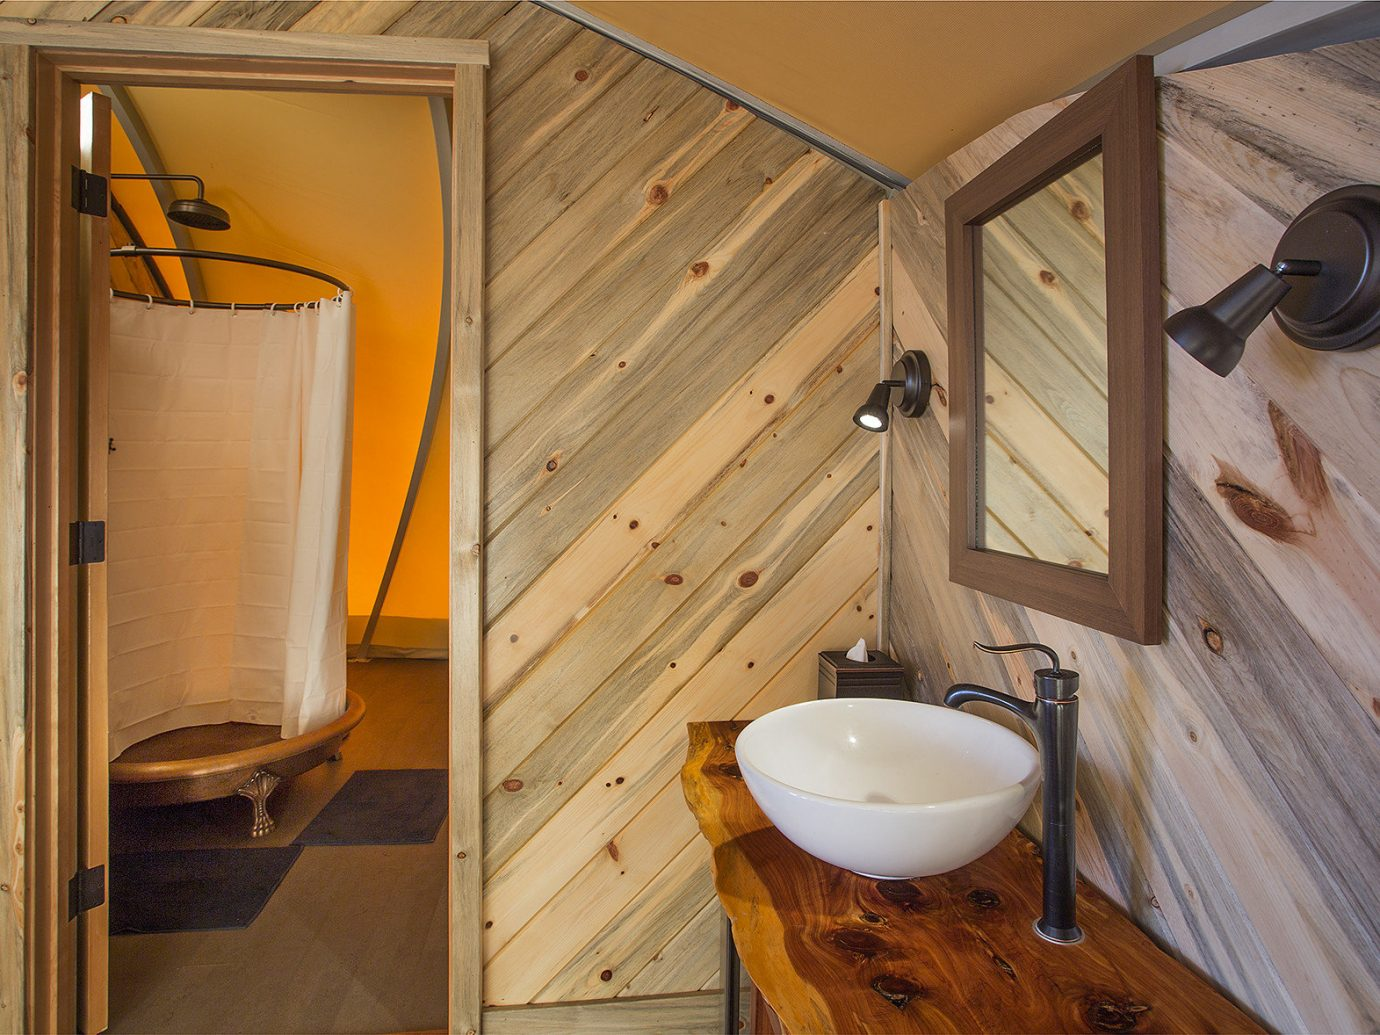 Glamping Outdoors + Adventure Trip Ideas indoor wall floor room man made object wooden bathroom house wood home hardwood cottage